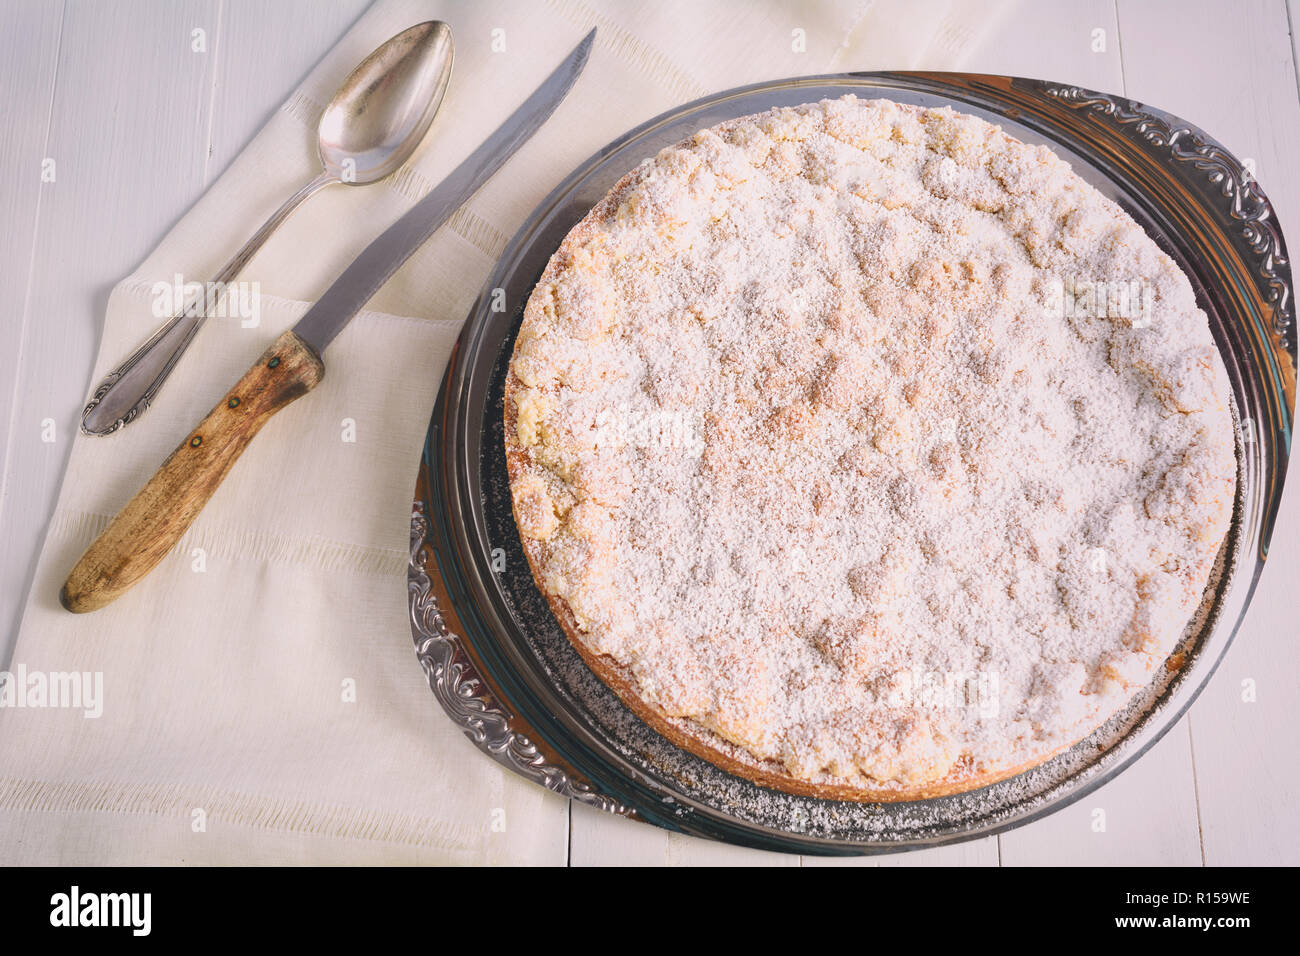 A Homemade Apple Crumble Cake On A Cake Plate Stock Photo 224466970